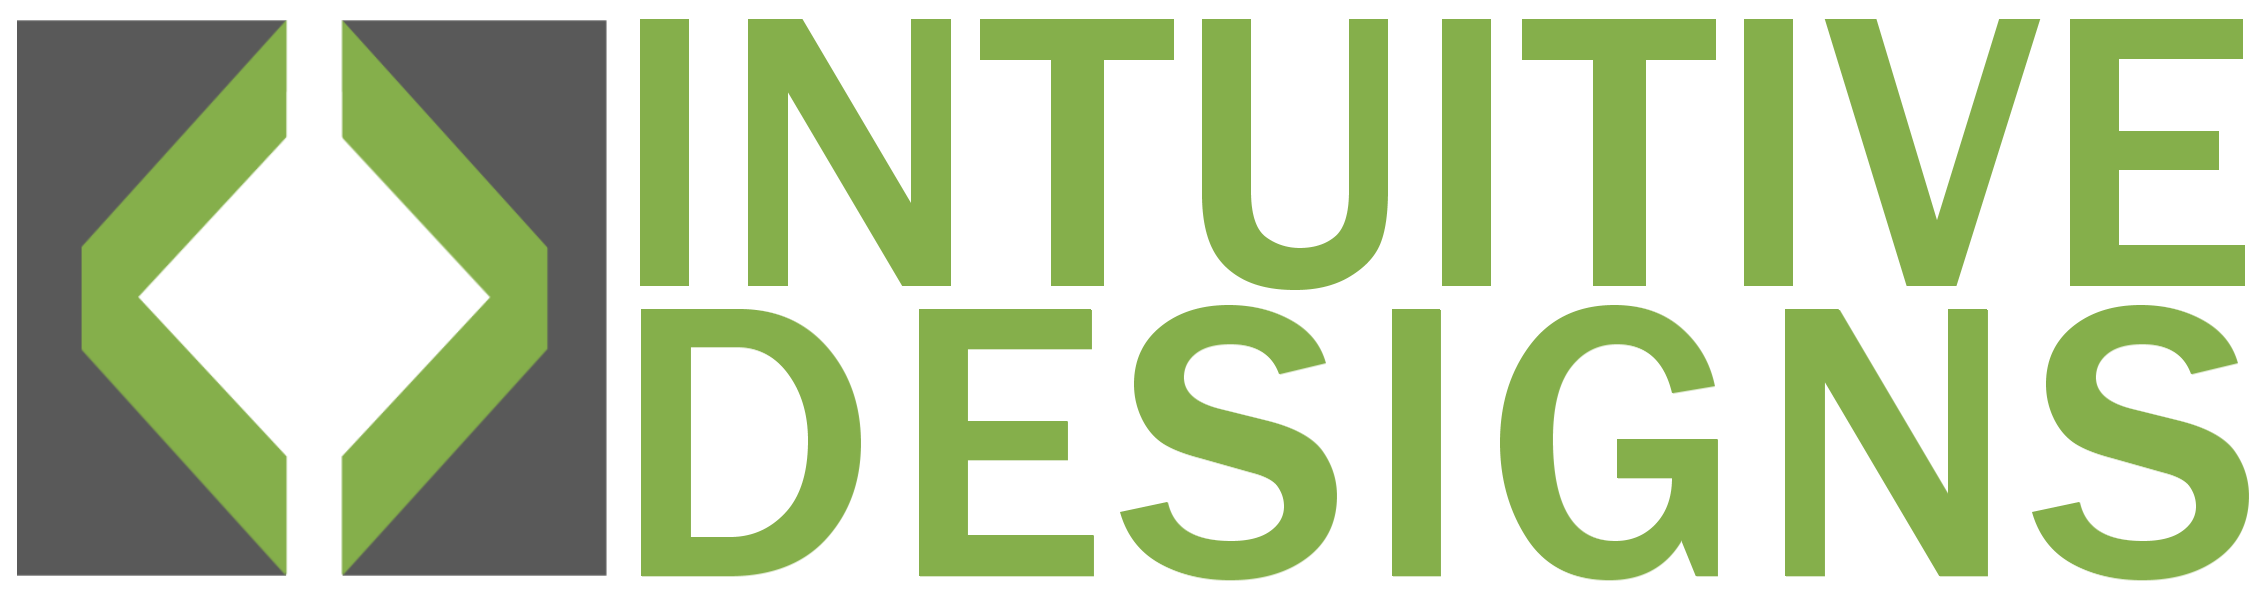 Intuitive Designs LLC